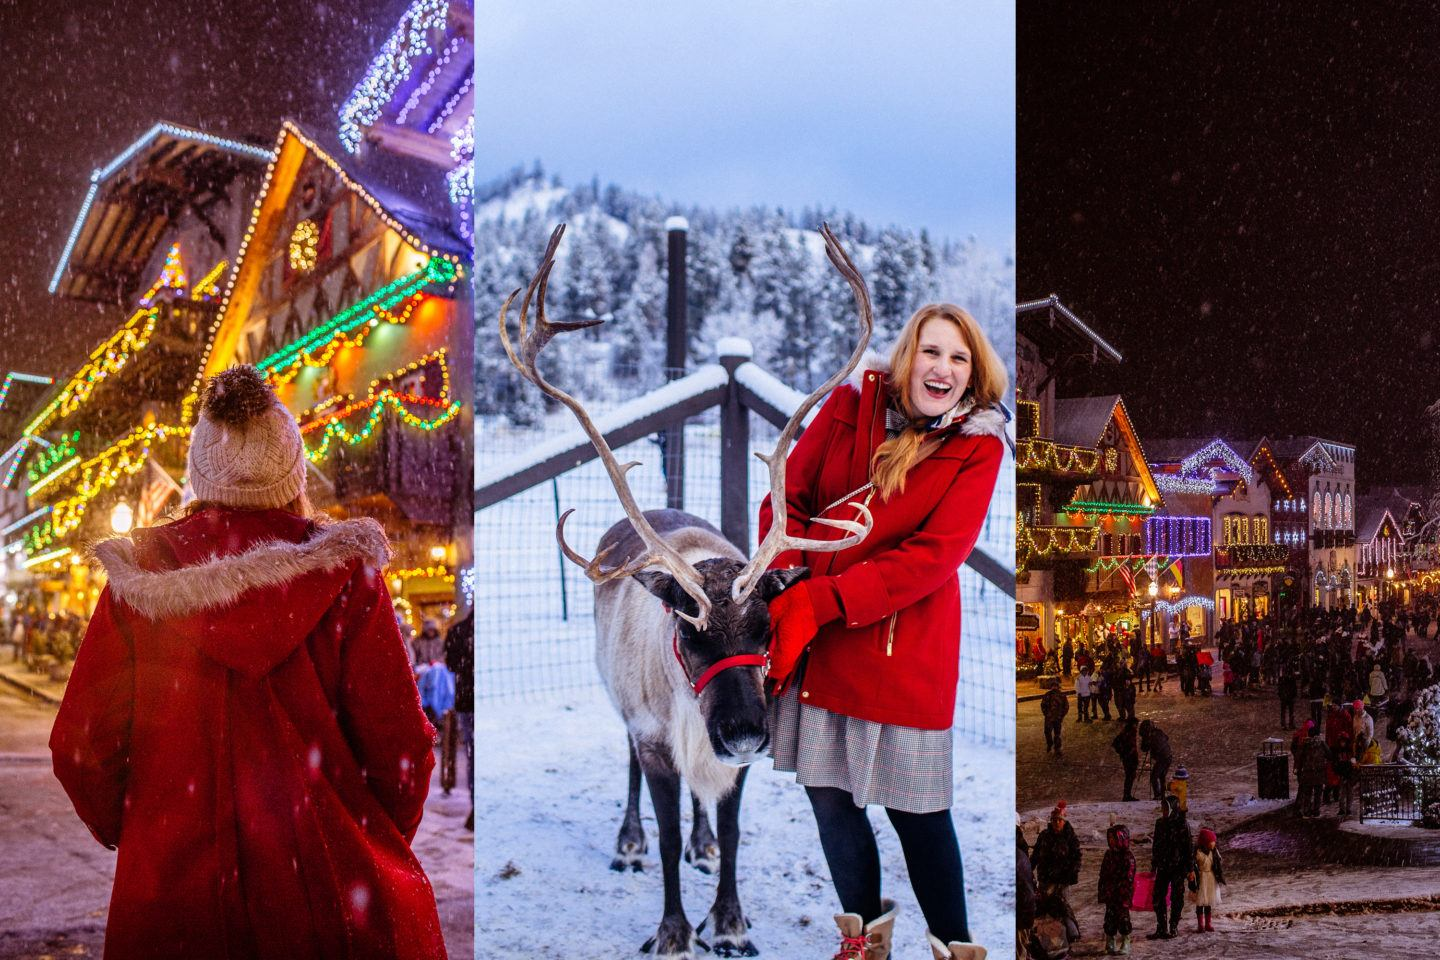 12 Festive Leavenworth Christmas Activities You'll Love